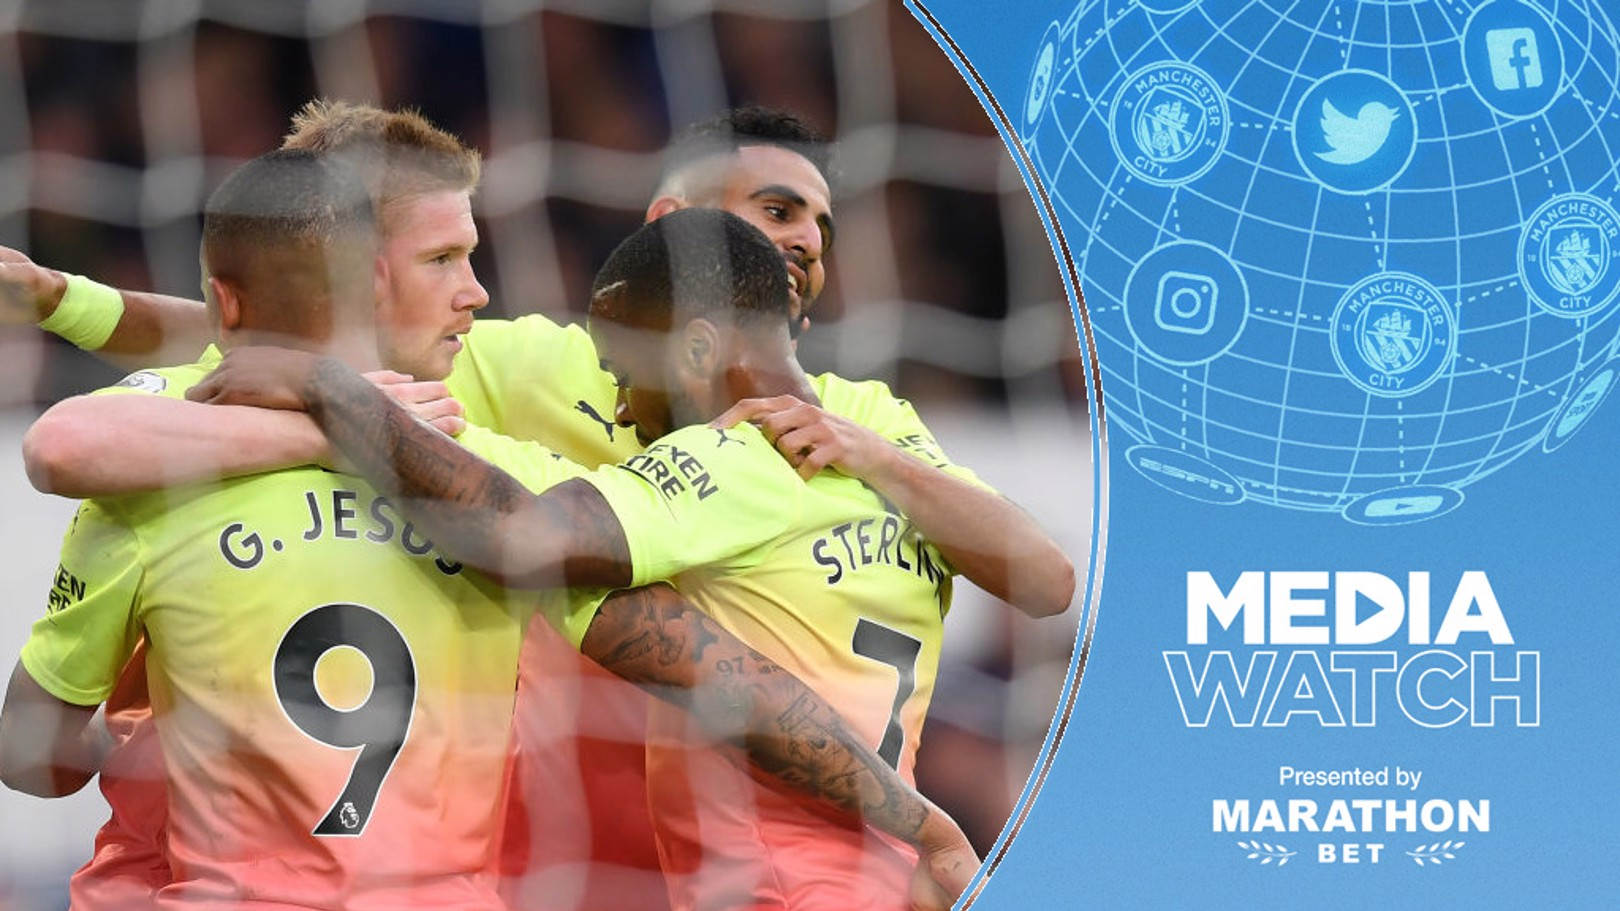 MAIN MEN: Riyad Mahrez and Kevin De Bruyne have been praised in the media.